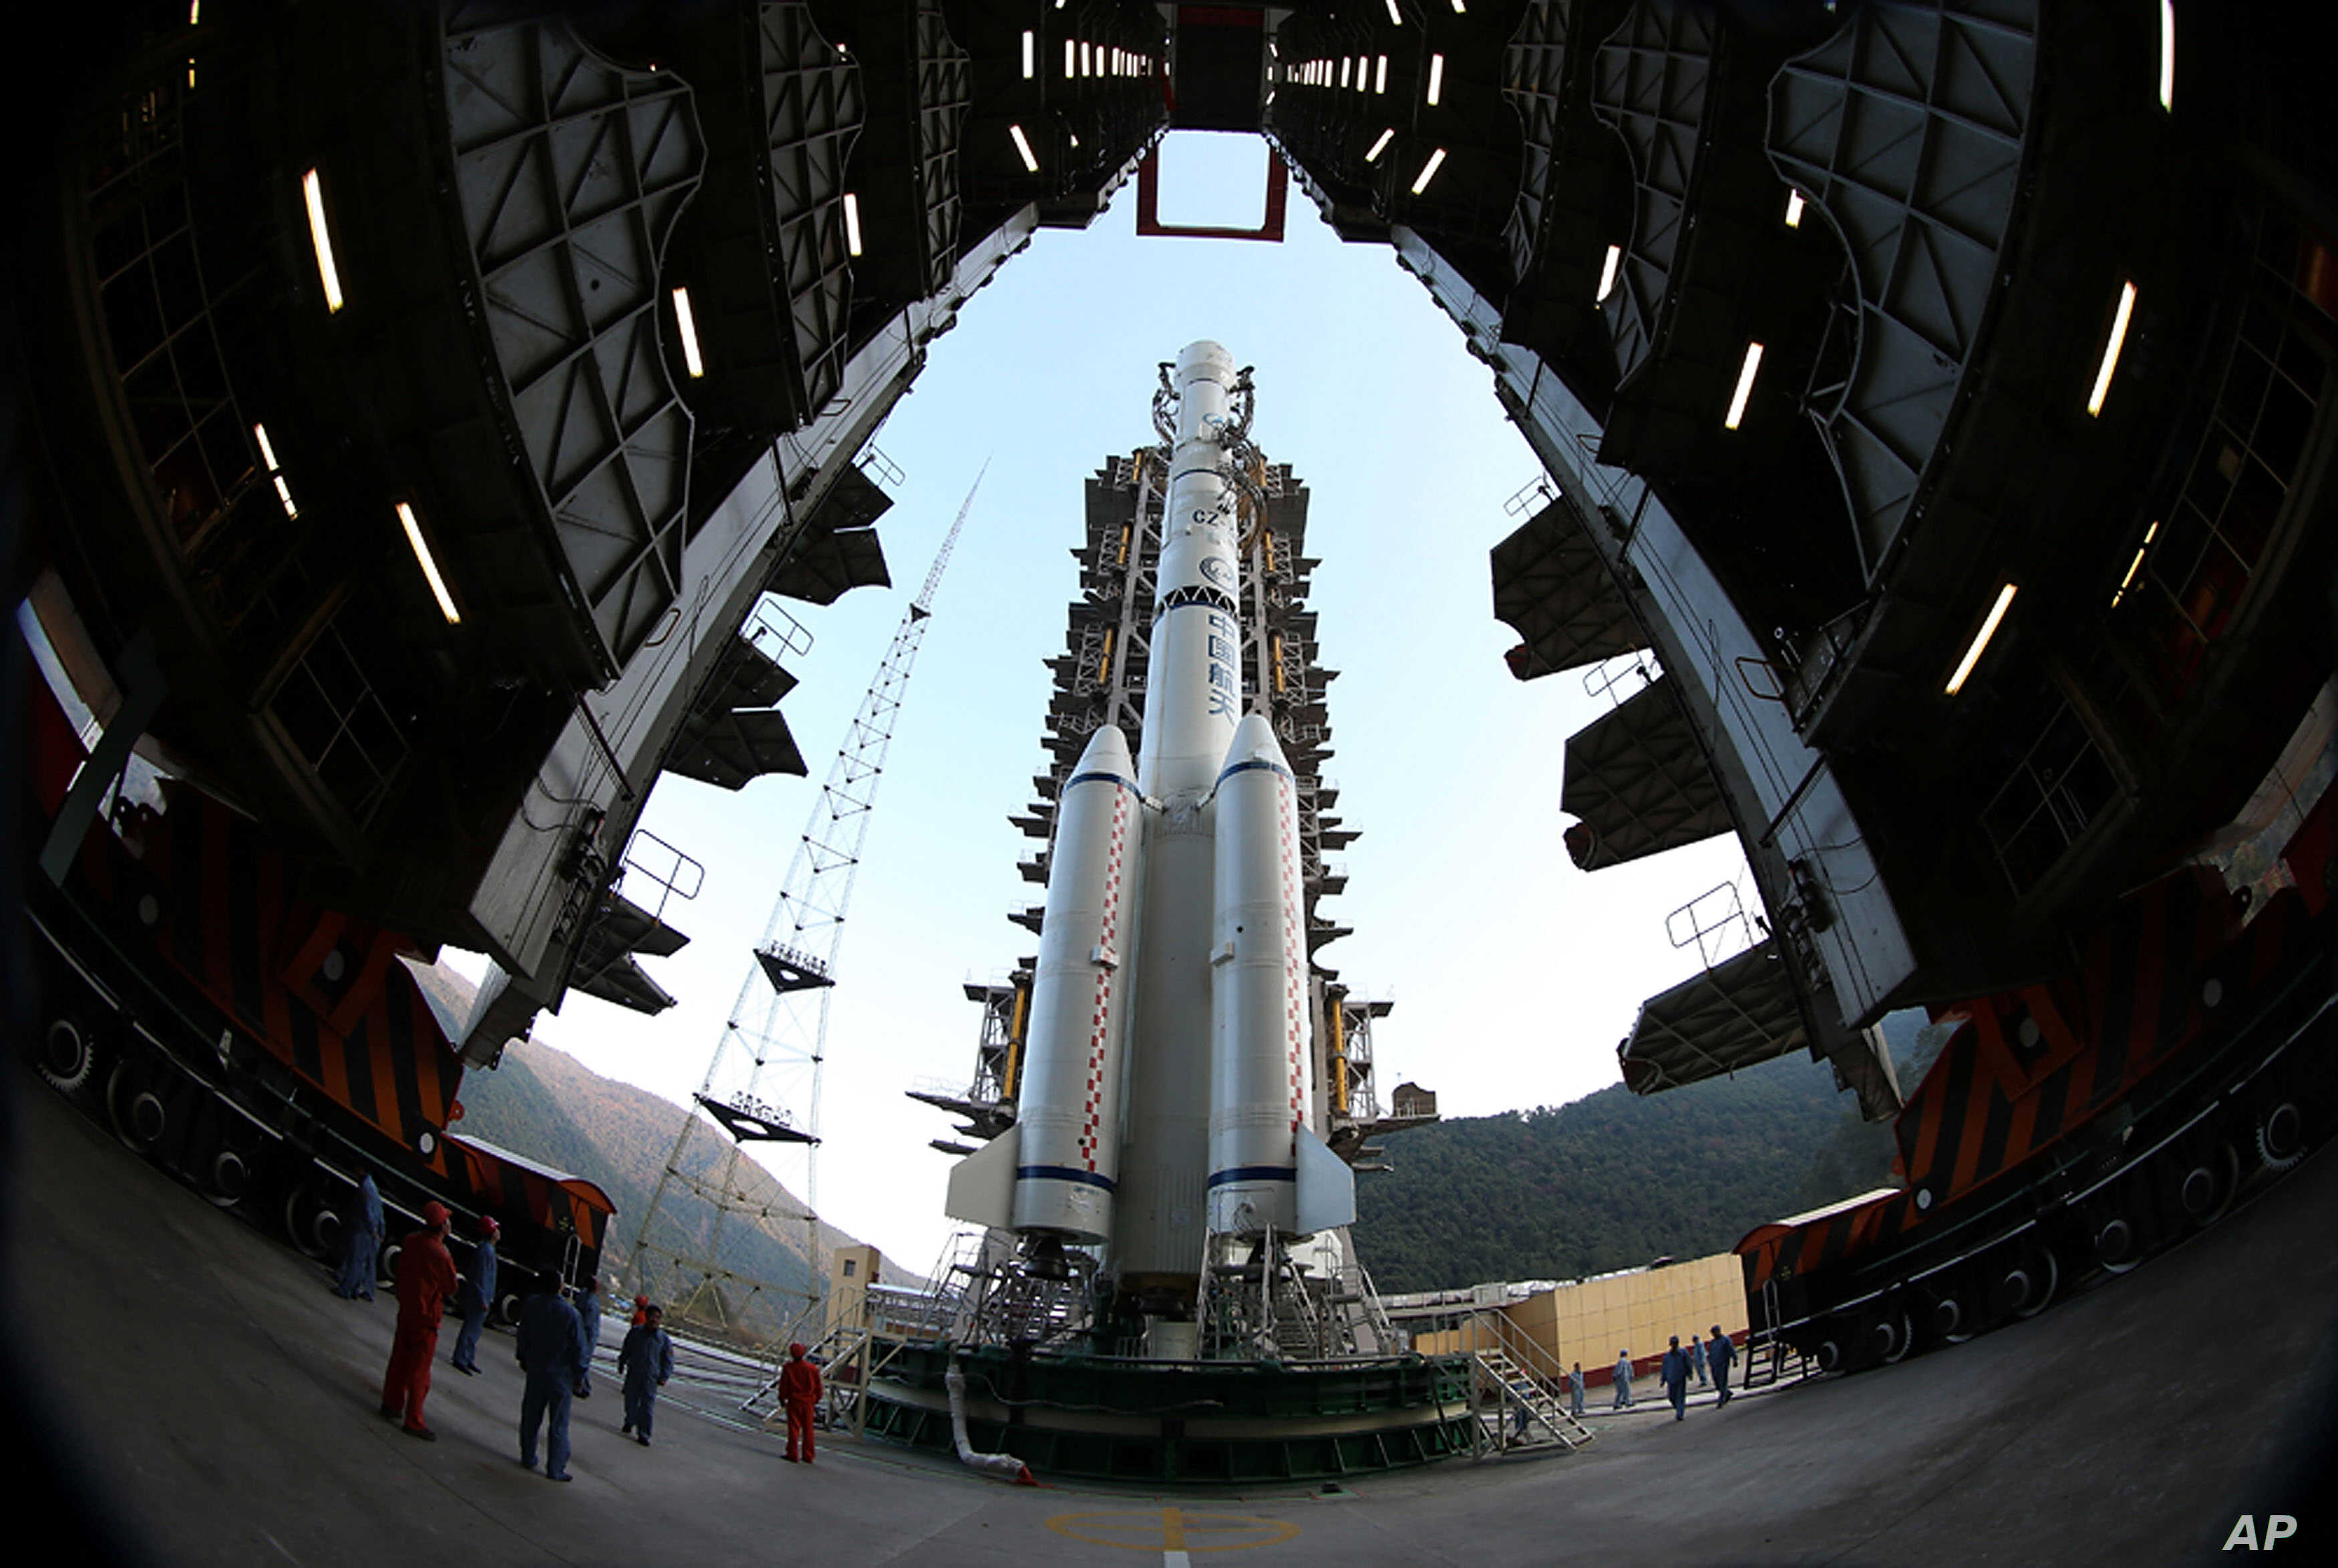 The Long March 3B rocket carrying the Chang'e-3 lunar probe is prepared for launch at the Xichang Satellite Launch Center in Xichang in southwest China's Sichuan province on Sunday, Dec. 1, 2013.